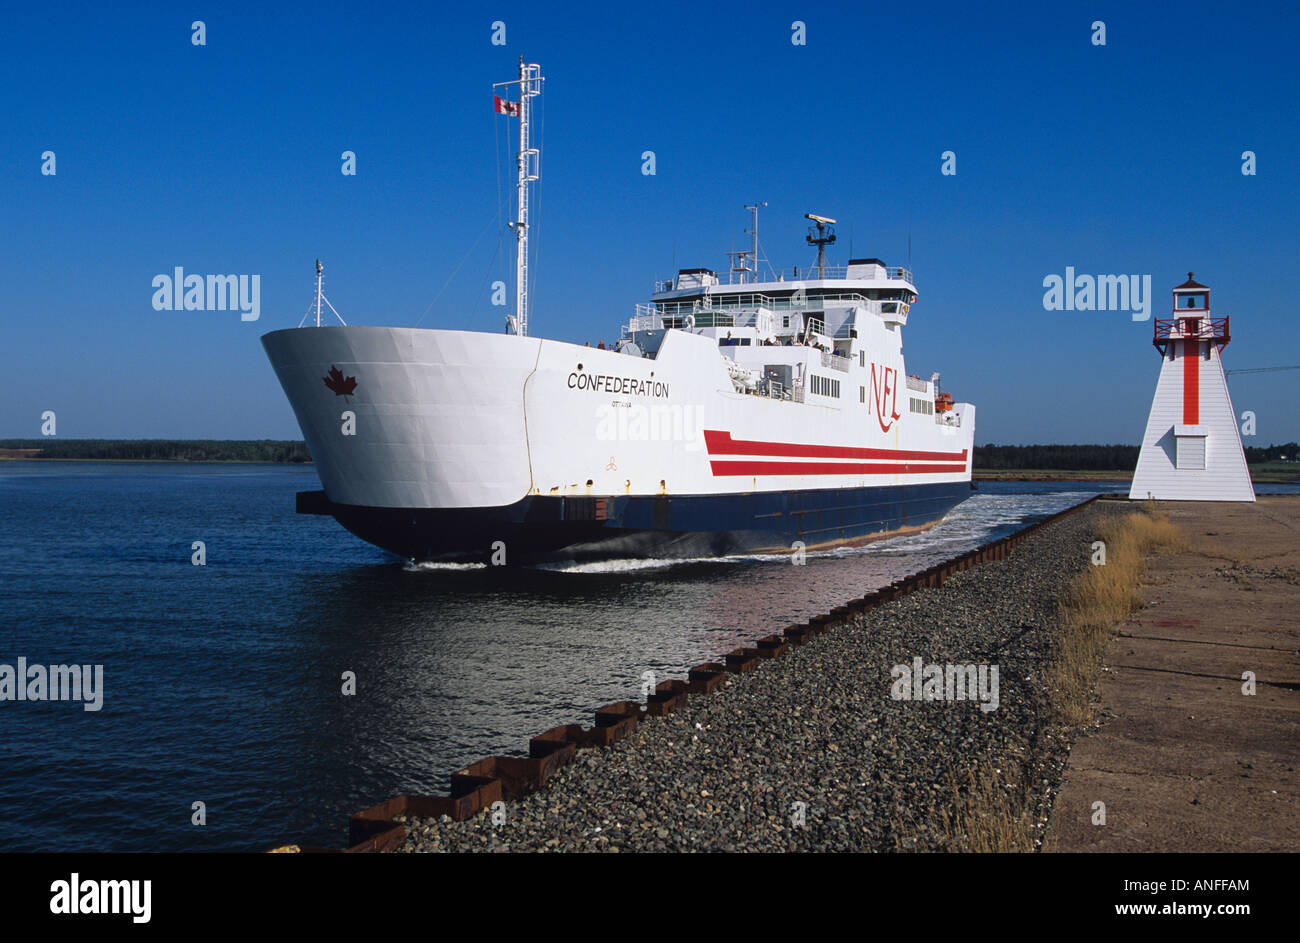 Northumberland Ferry boat, Wood Islands, Prince Edward Island, Canada - Stock Image